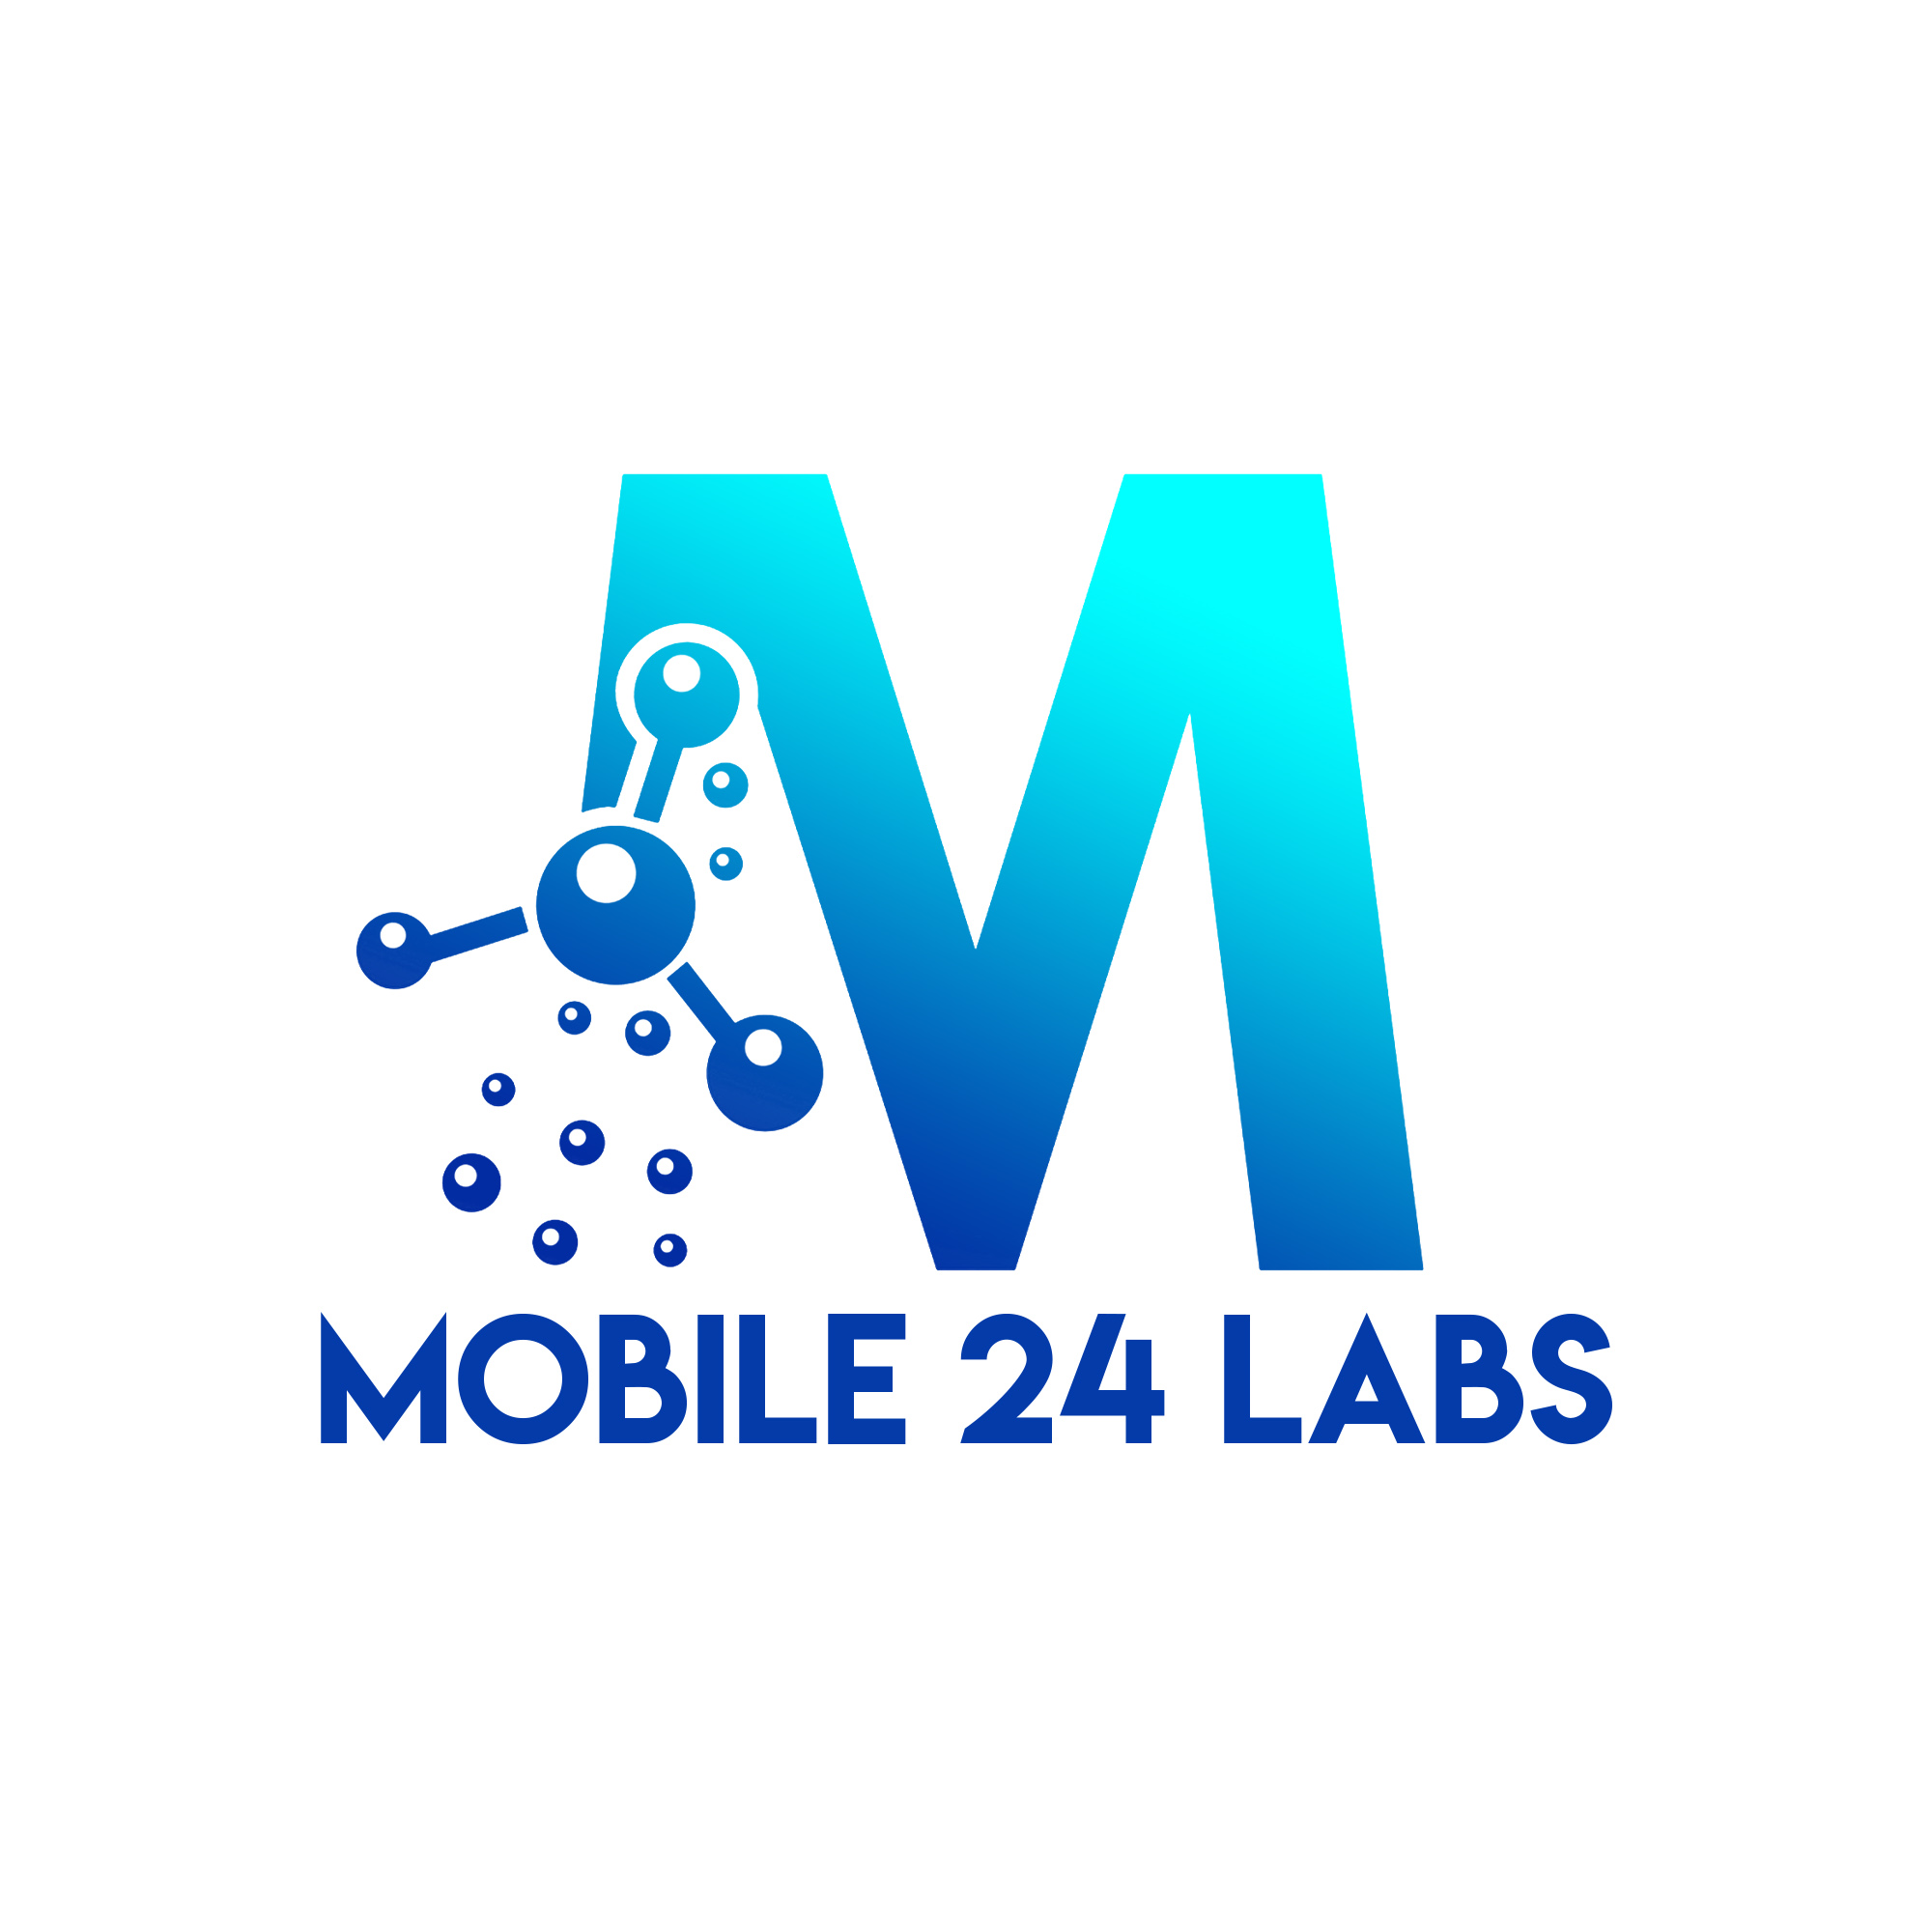 Mobile 24 Labs